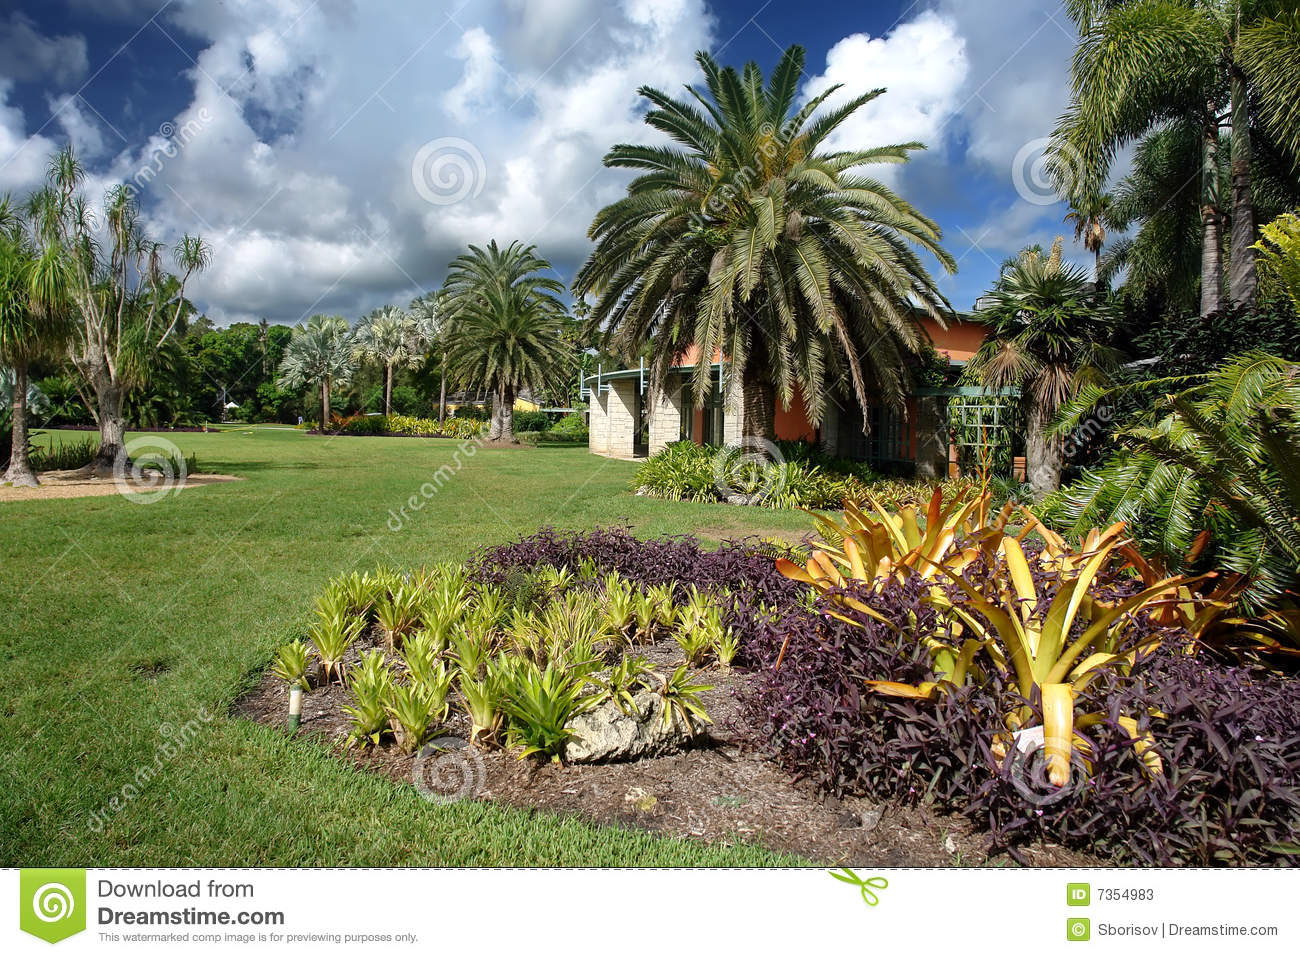 Fairchild tropical botanic garden stock photos image - Fairchild tropical botanic garden ...